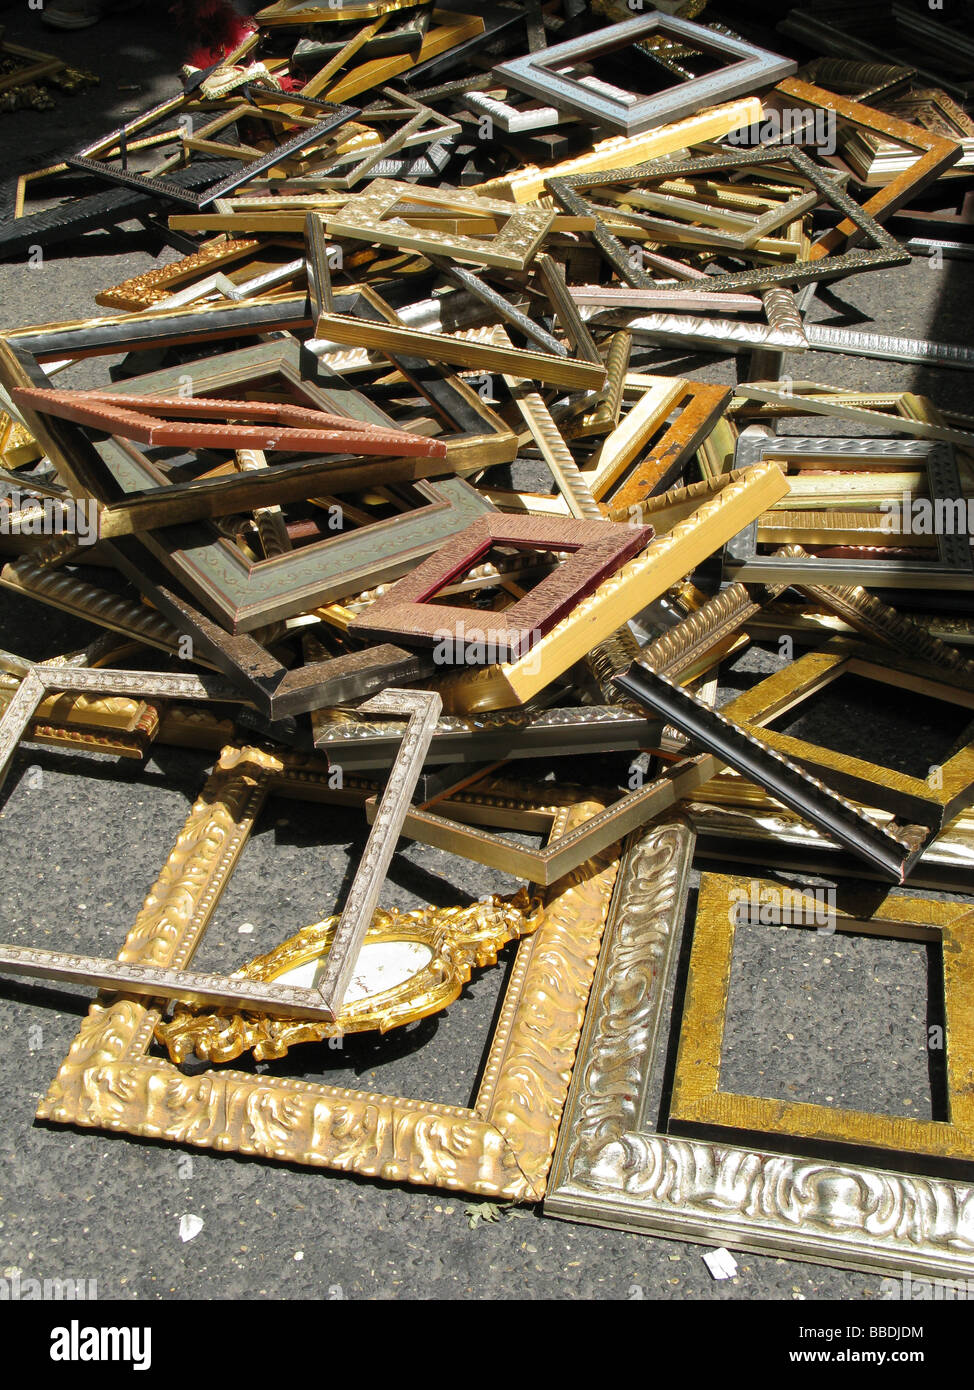 Lots Of Old Picture Frames For Sale In Street Market Stock Photo